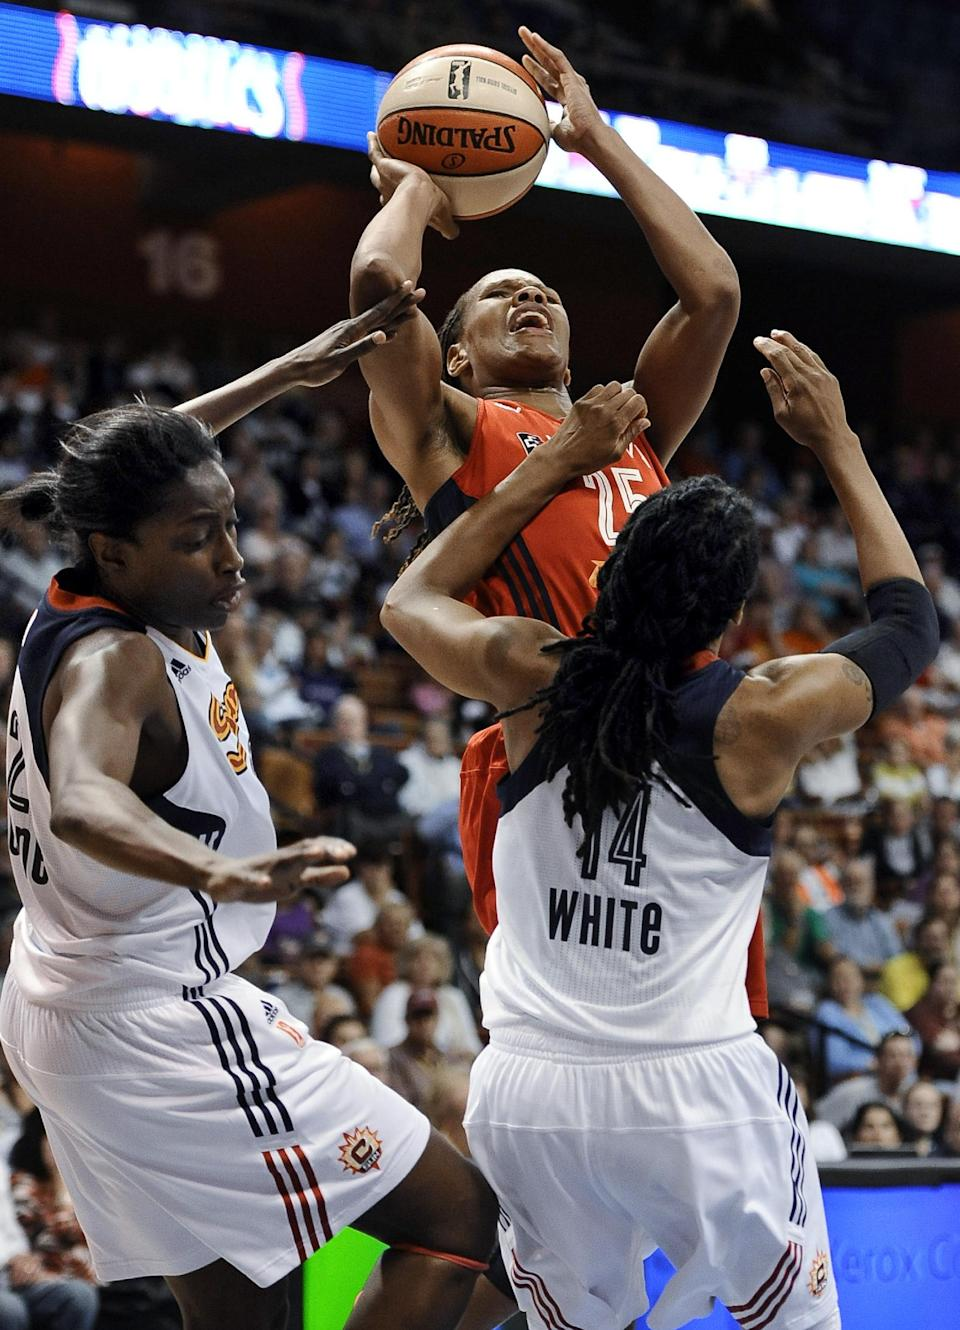 Tan White leads Sun past Mystics, 77-70